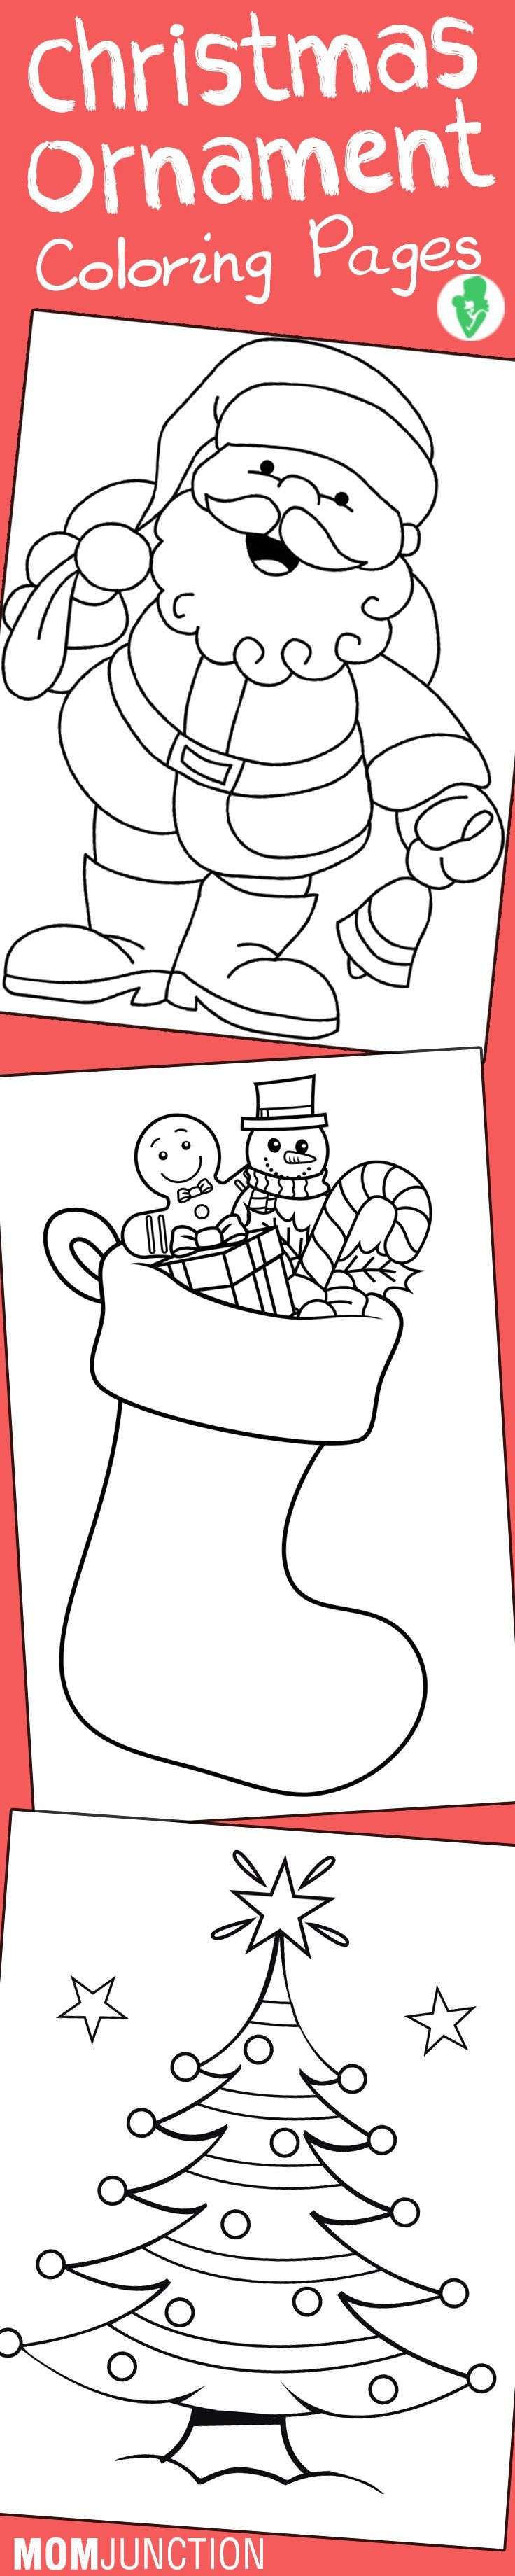 Top 10 Free Printable Christmas Ornament Coloring Pages Online Boze Narodzenie Pomysly